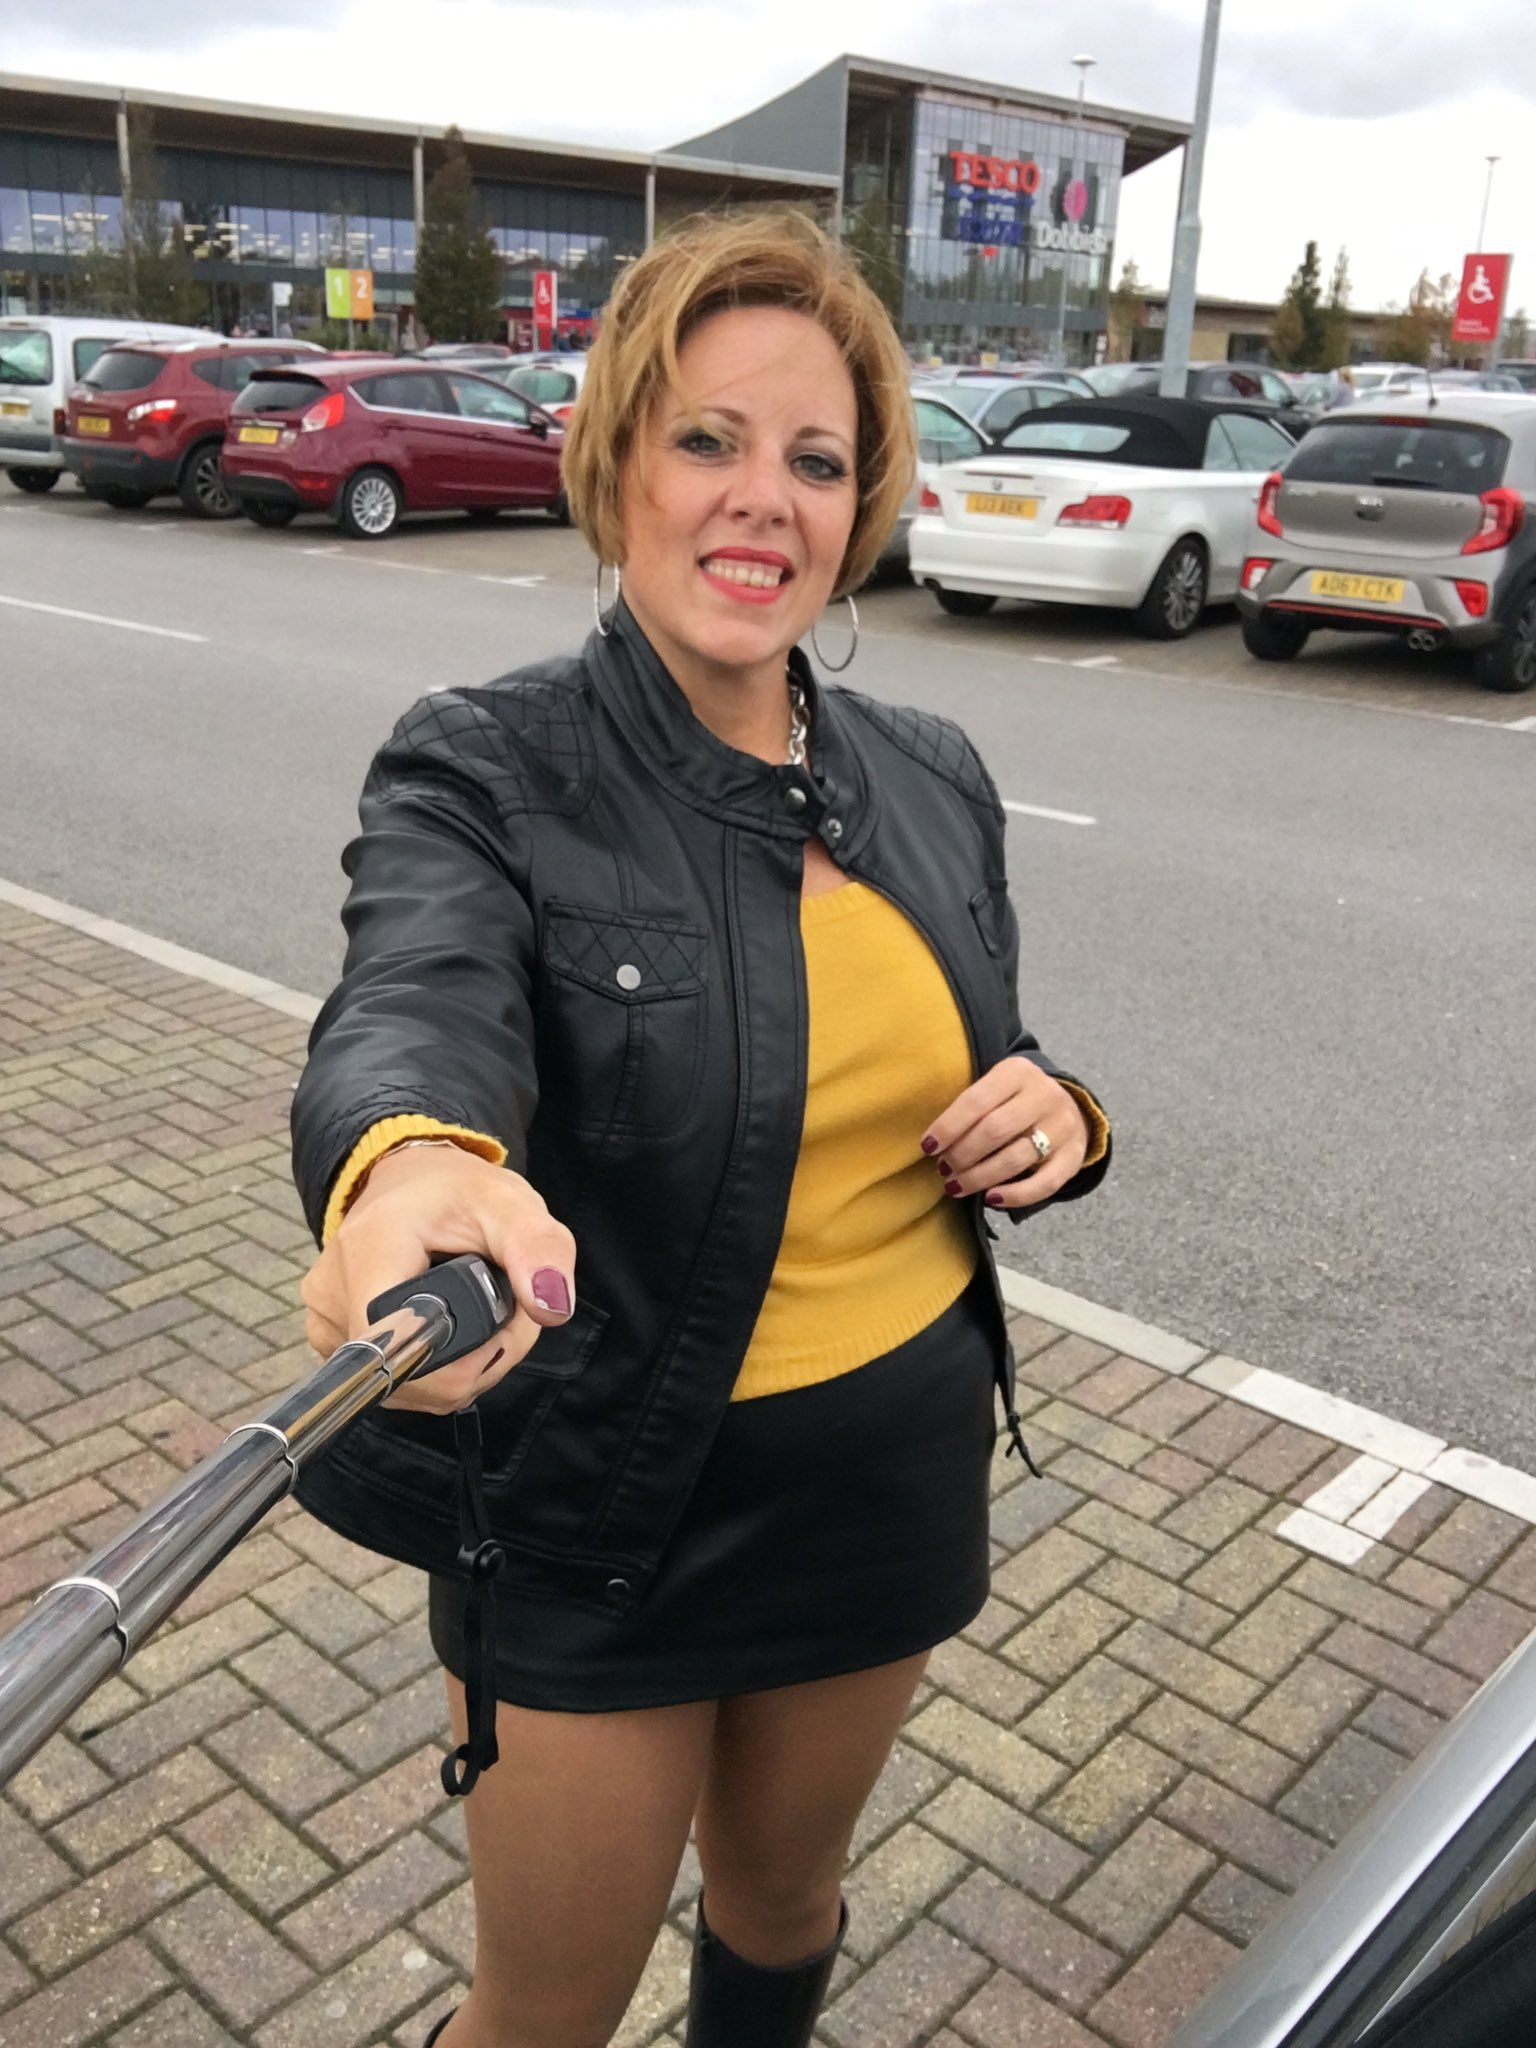 Curvy Claire on Twitter: Out doing a bit of a shop…